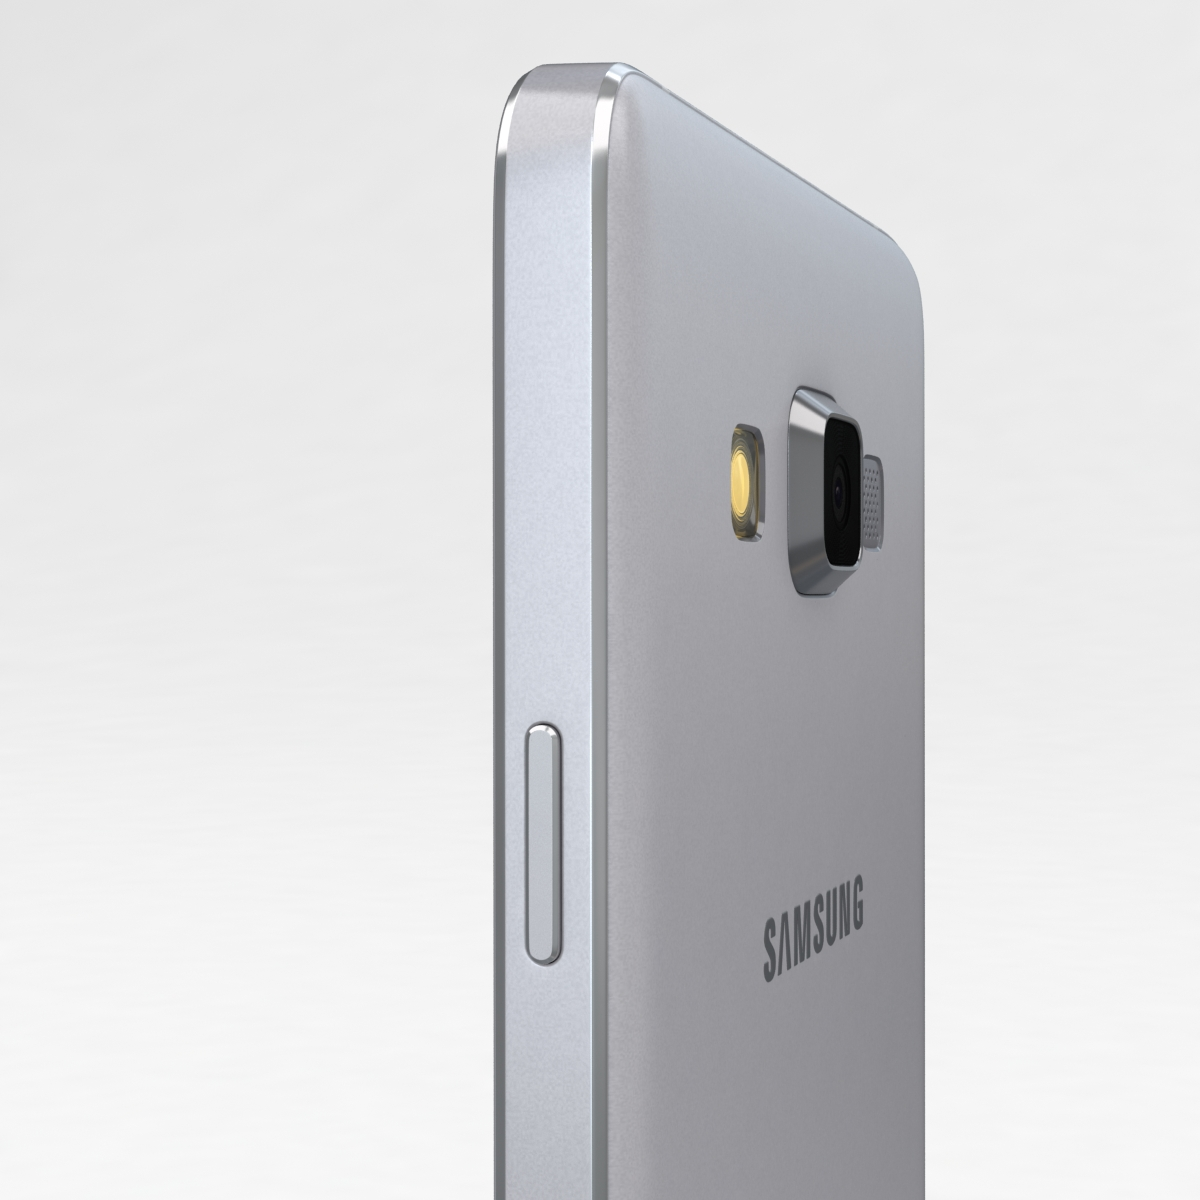 samsung galaxy a3 and a3 duos silver 3d model 3ds max fbx c4d obj 208318